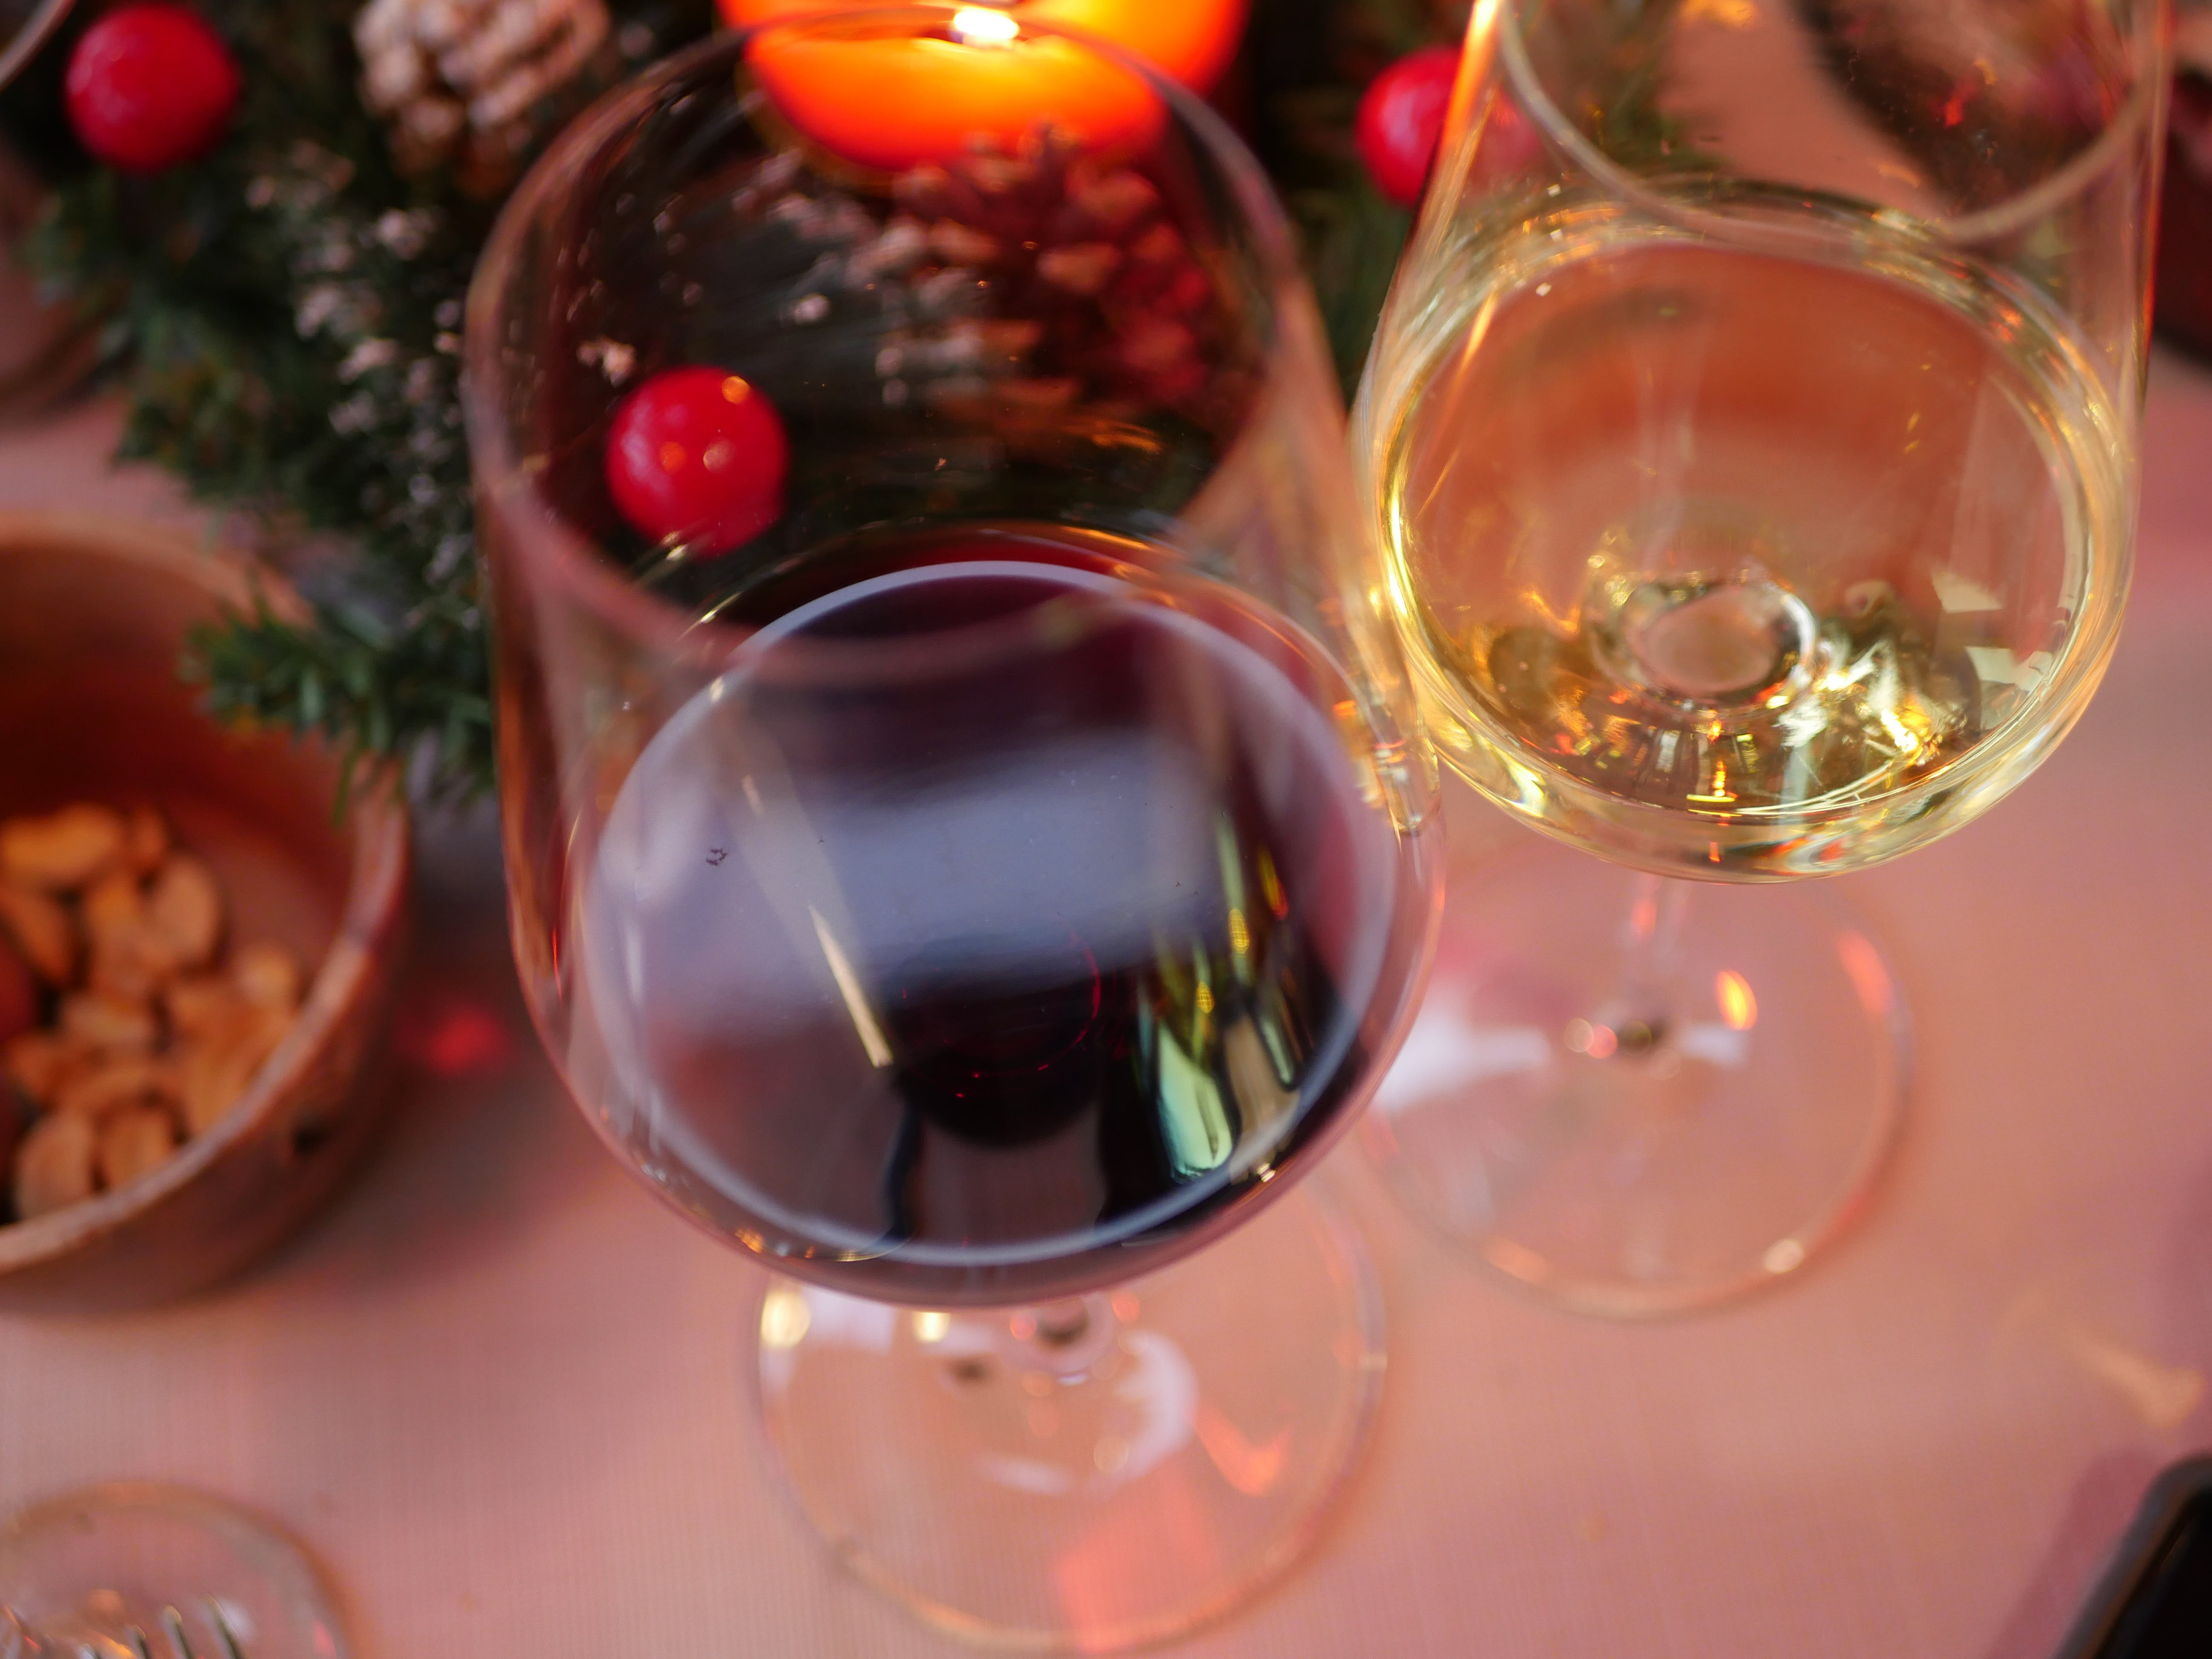 Free stock photo of candle, wine glasses